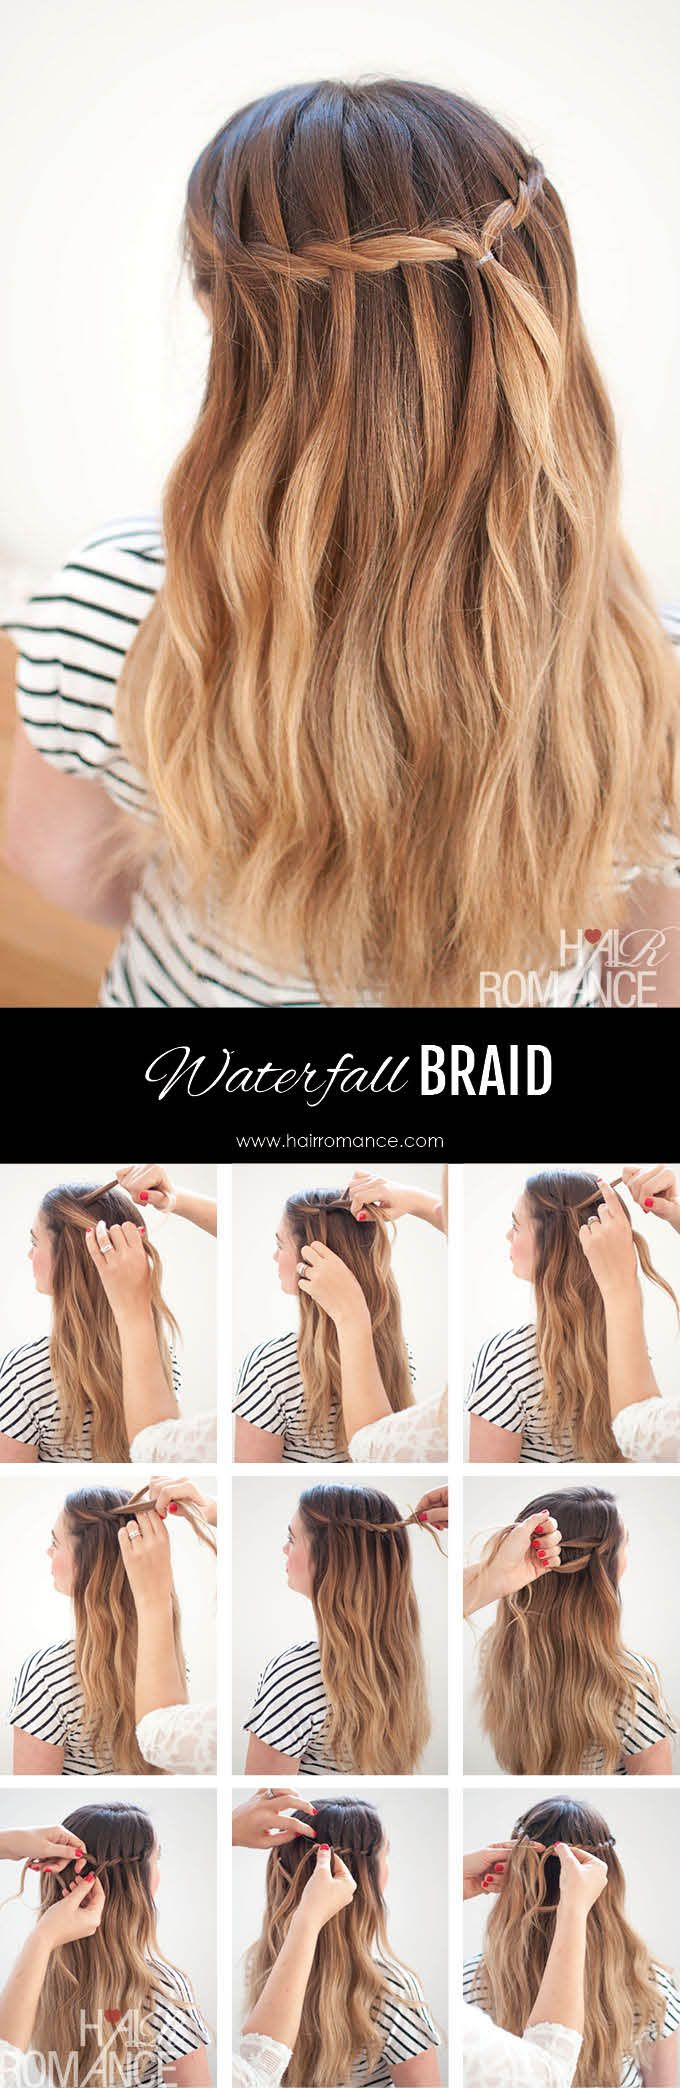 Waterfall Mermaid Braid Tutorial for Long Hair – Hair Romance